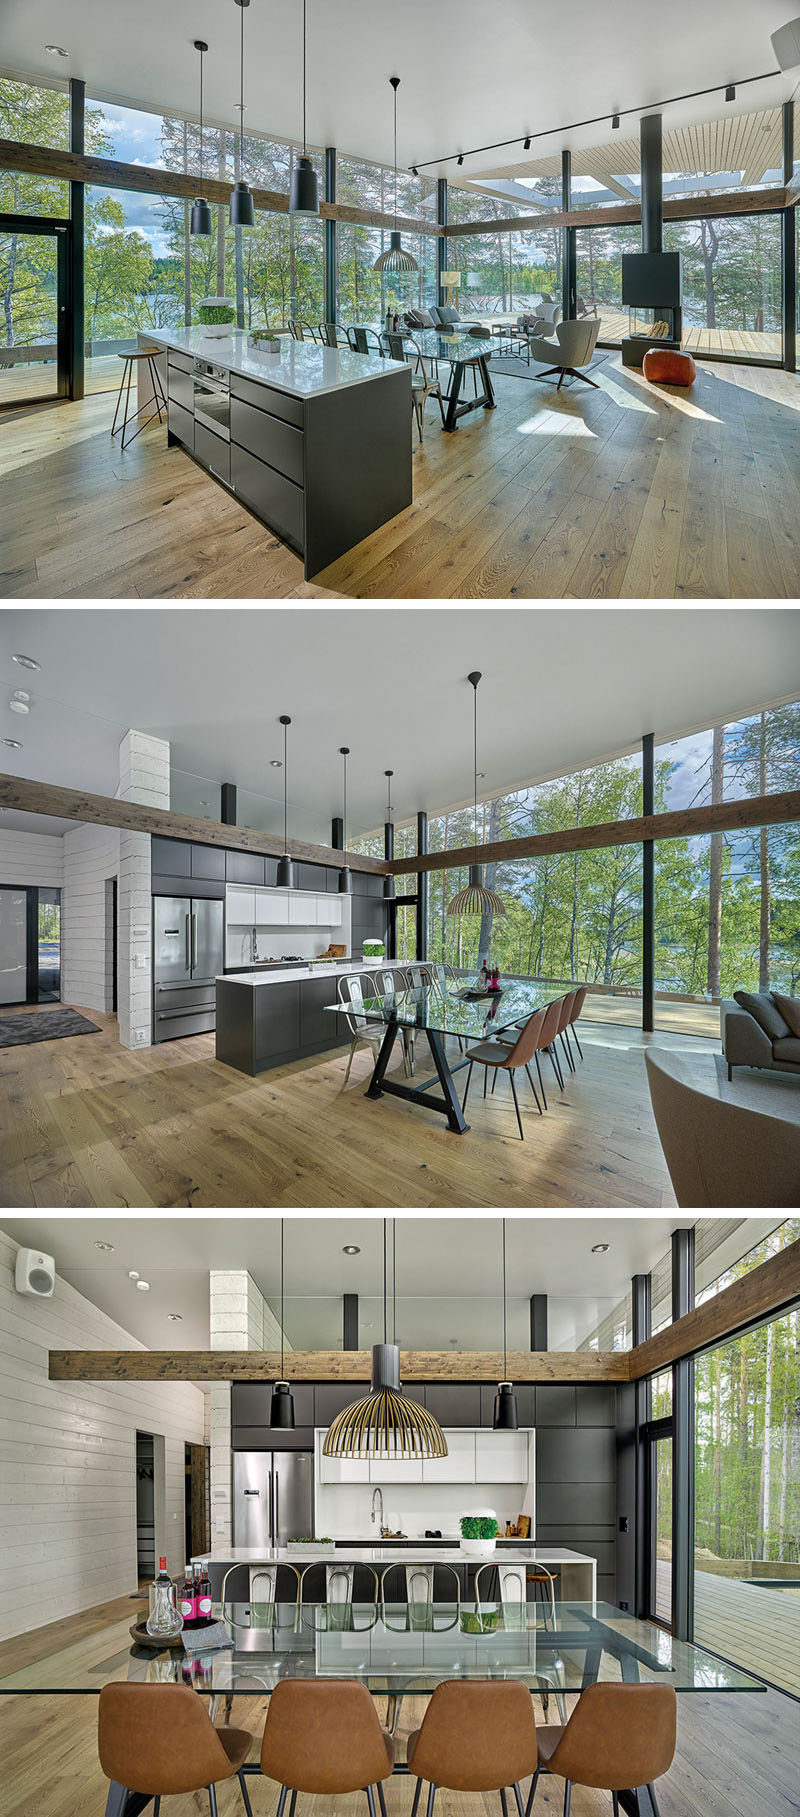 In this modern house, a simple pendant light anchors the glass dining table in the open room, while behind it sits the kitchen with dark cabinets and white countertops. #OpenPlan #Dining #Kitchen